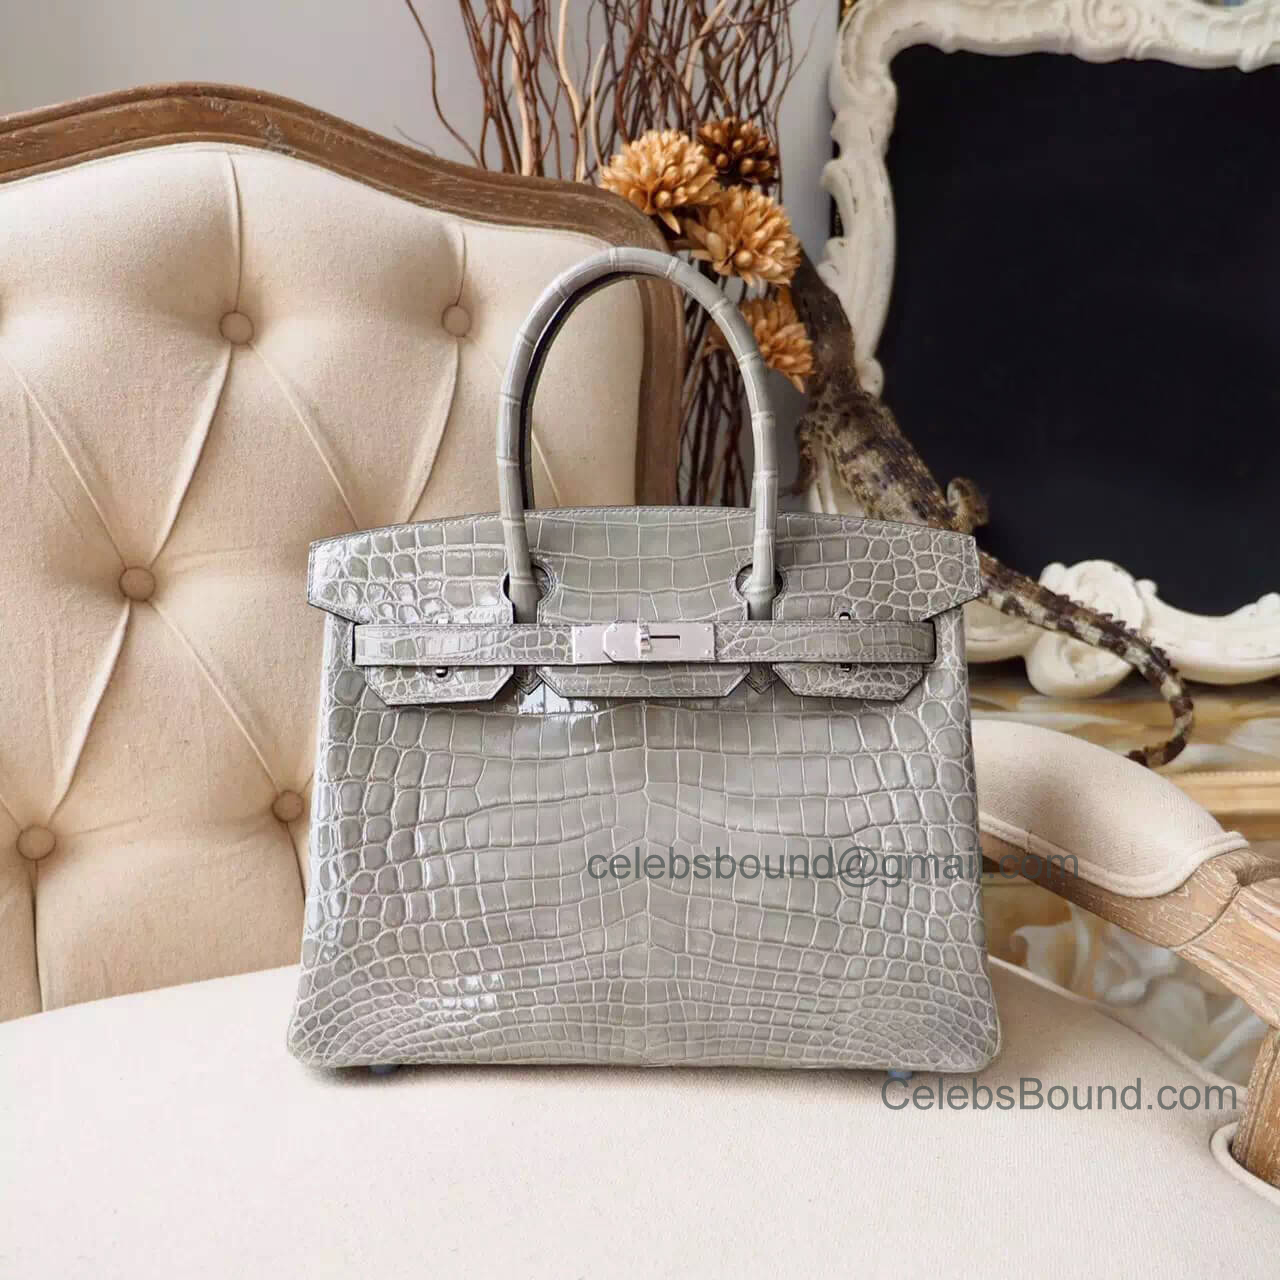 cac8546f62 Copy Hermes Birkin 30 Bag in Gris Tourterelle Shiny Nile Croc PHW